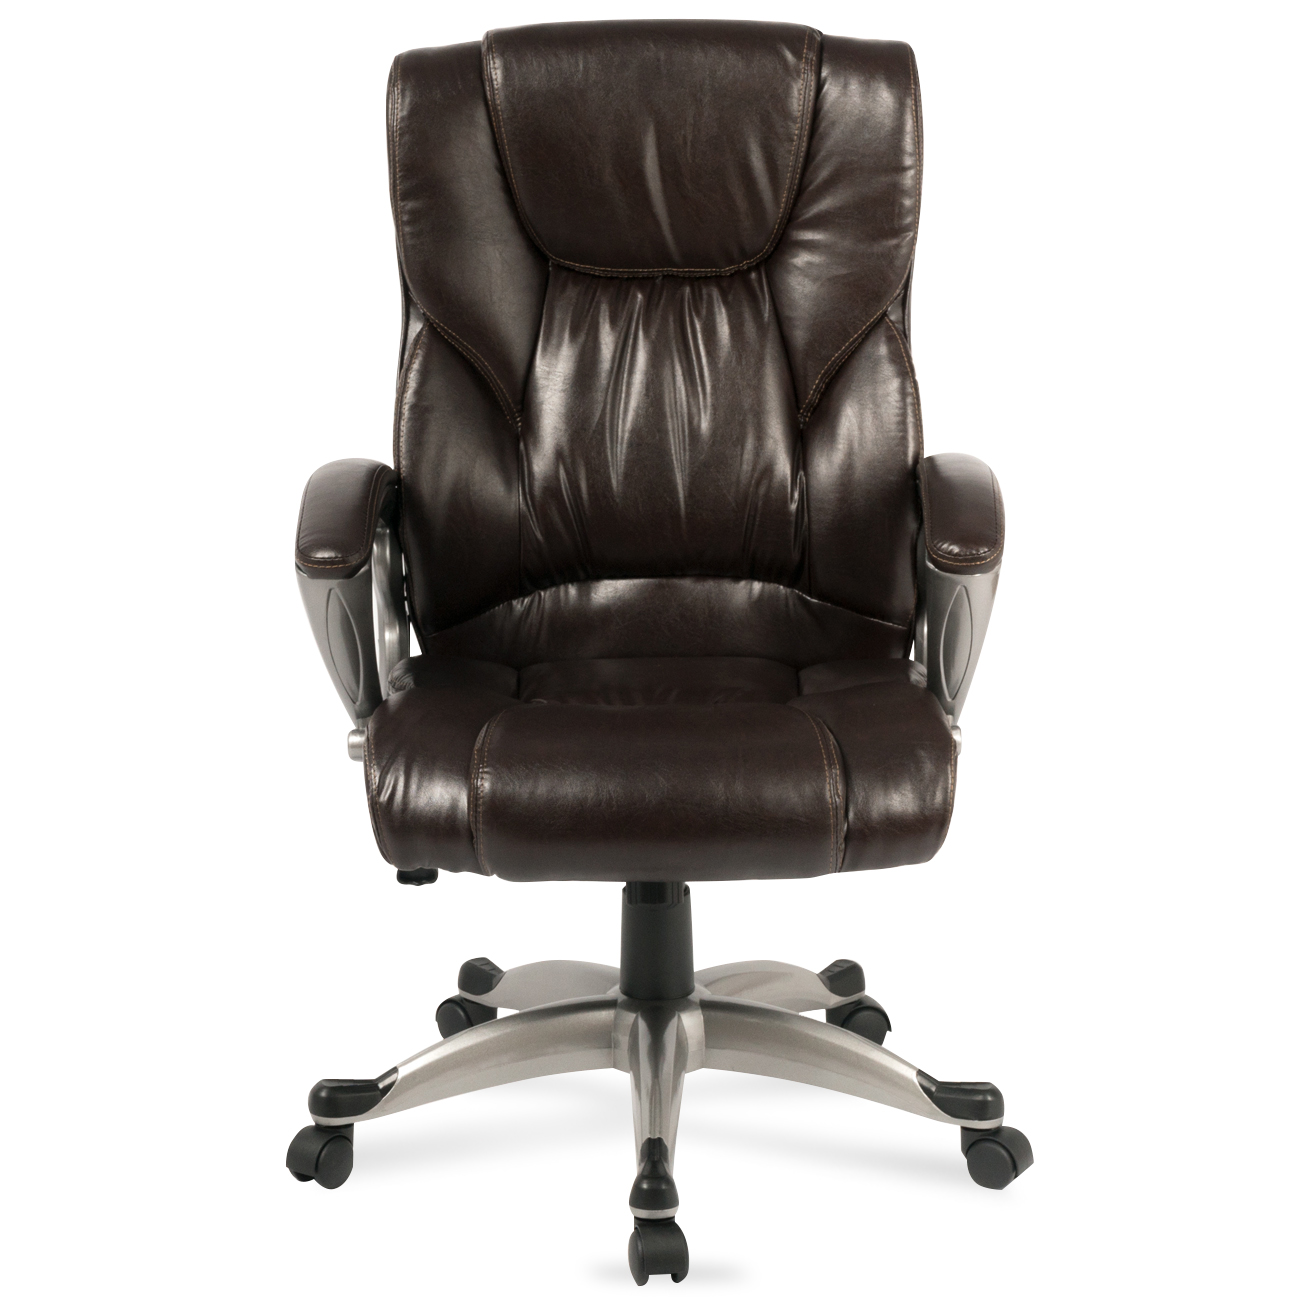 High Back Desk Chair Executive Office Chair High Back Task Ergonomic Computer